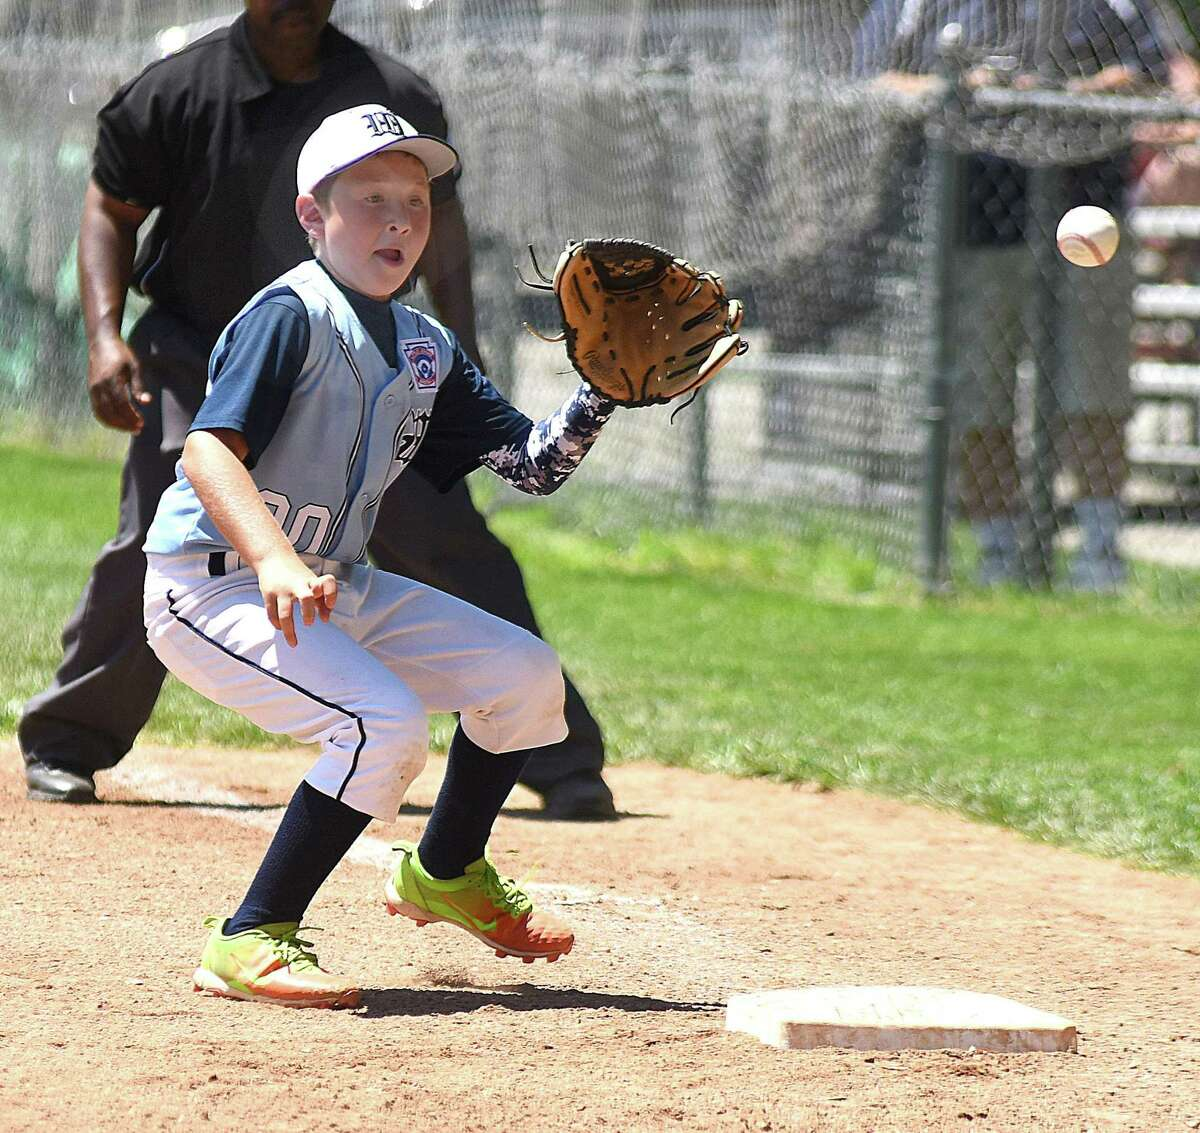 Wilton first baseman Stef Cross plays a bounding ball for an out during Saturday's District 1 10-year-old Little League All-Star double-elimination playoff round at Bill Terry Field in Wilton.